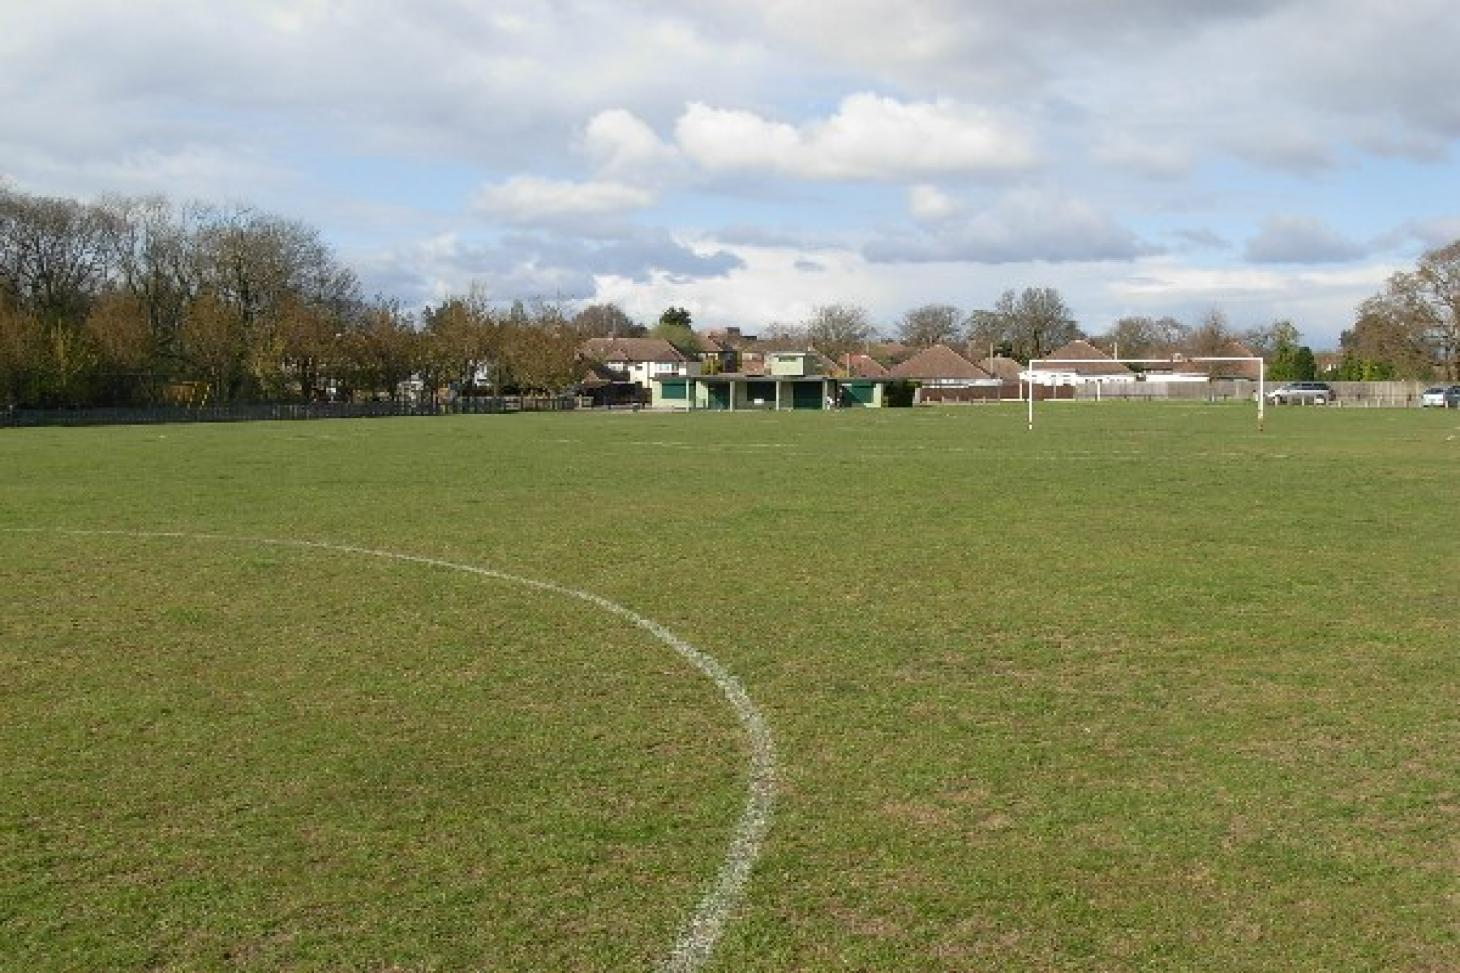 Petts Wood Recreation Ground 11 a side | Grass football pitch